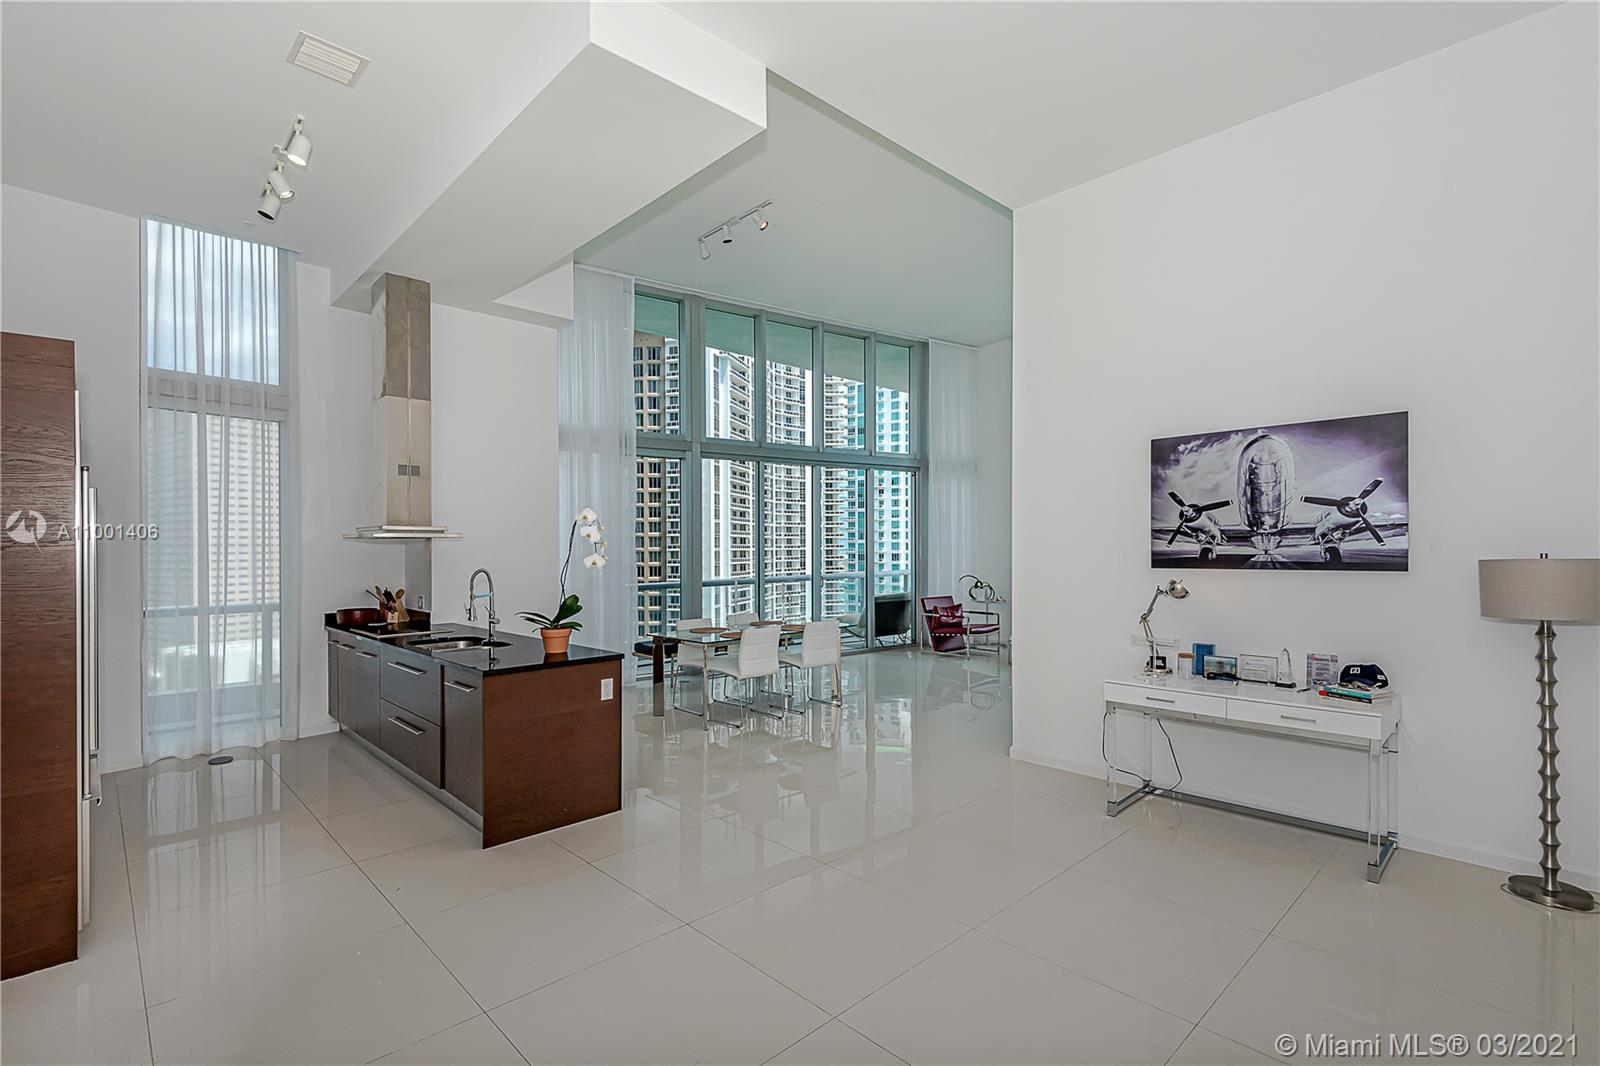 """FURNISHED LOFT UNIT 22 FT CEILINGS/2ND BEDROOM REMOVED TO CREATE TRUE NY LOFT FEEL , CORNER WITH WRAPAROUND GLASS BALCONY & SWEEPING VIEWS OF SPARKLING BISCAYNE BAY FROM ALL ROOMS. A FOYER ENTRY WELCOMES YOU TO A SPACIOUS OPEN FLOOR PLAN FLOODED WITH NATURAL LIGHT & GLEAMING FLOORS THROUGHOUT. KITCHEN APPLIANCES ARE TOP OF THE LINE (SUB-ZERO, WOLF, BOSH). THE MASTER SUITE WILL TAKE YOUR BREATH AWAY SEPARATE WALK-IN CLOSET, SPACIOUS BATHROOM FEATURES JACUZZI TUB, LARGE SHOWER ENCLOSURE & DUAL SINKS. THE COMPLEX AMENITIES INCLUDE ONSITE STATE-OF-THE-ART SPA, AEROBIC STUDIO, WEIGHT & SPINNING ROOMS, CLUB-ROOM, SCREENING ROOM. EASY ACCESS TO BRICKELL CITY CENTER, AREA RESTAURANTS & TROLLEY. THIS IS A HOME IN THE SKY WAITING TO WELCOME ITS NEW OWNER!"""""""